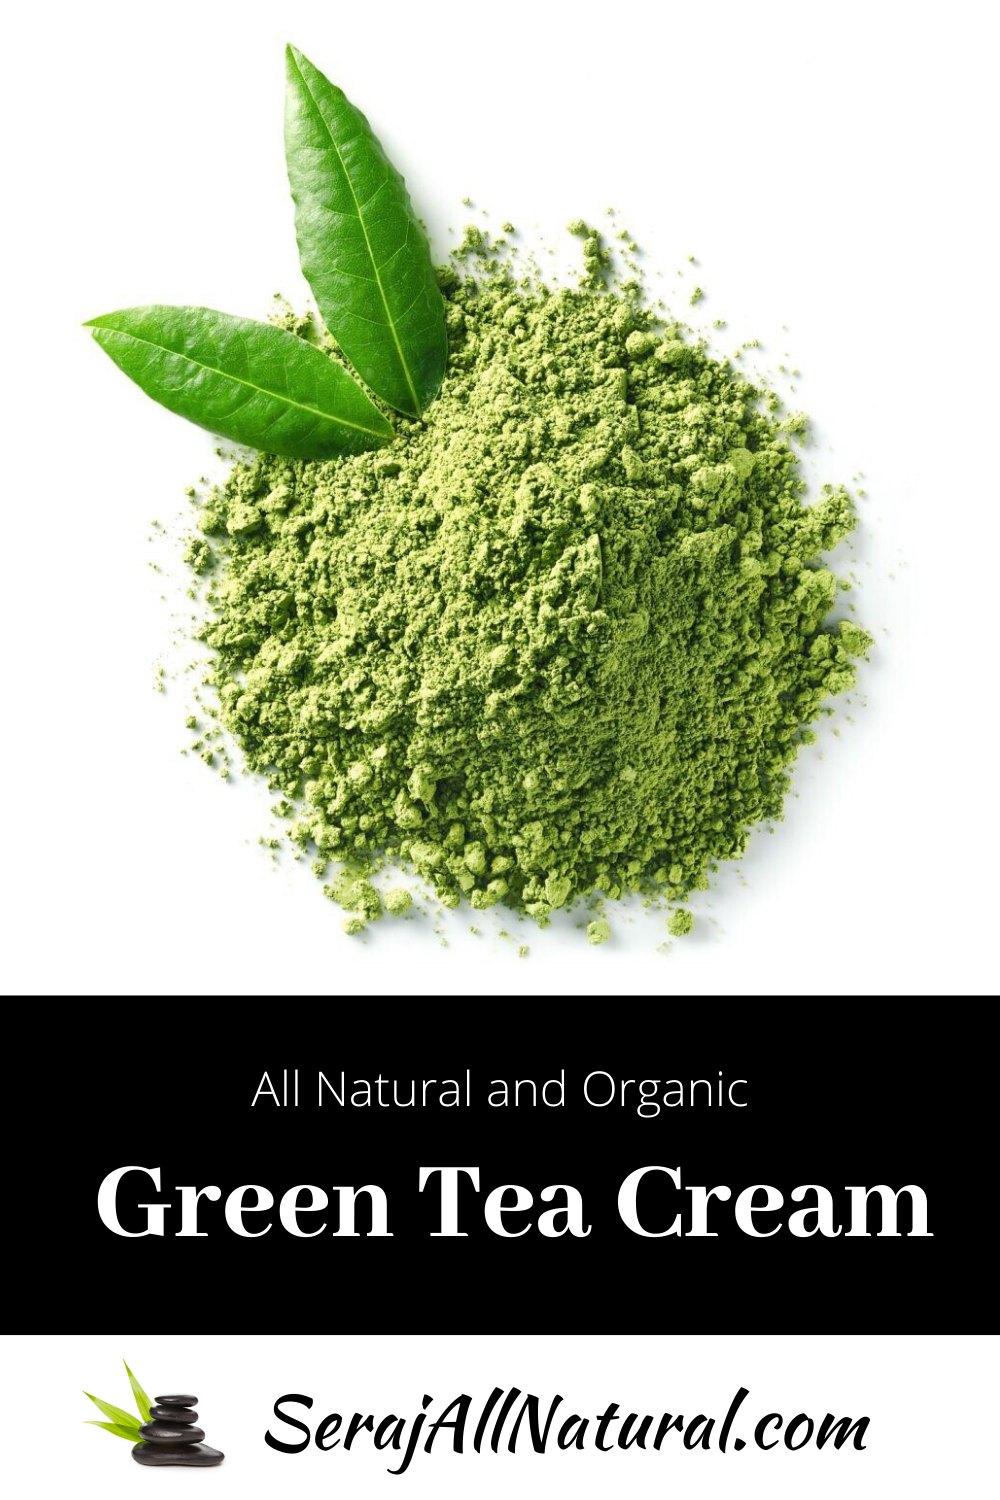 All Natural and Organic Green Tea Cream from Seraj